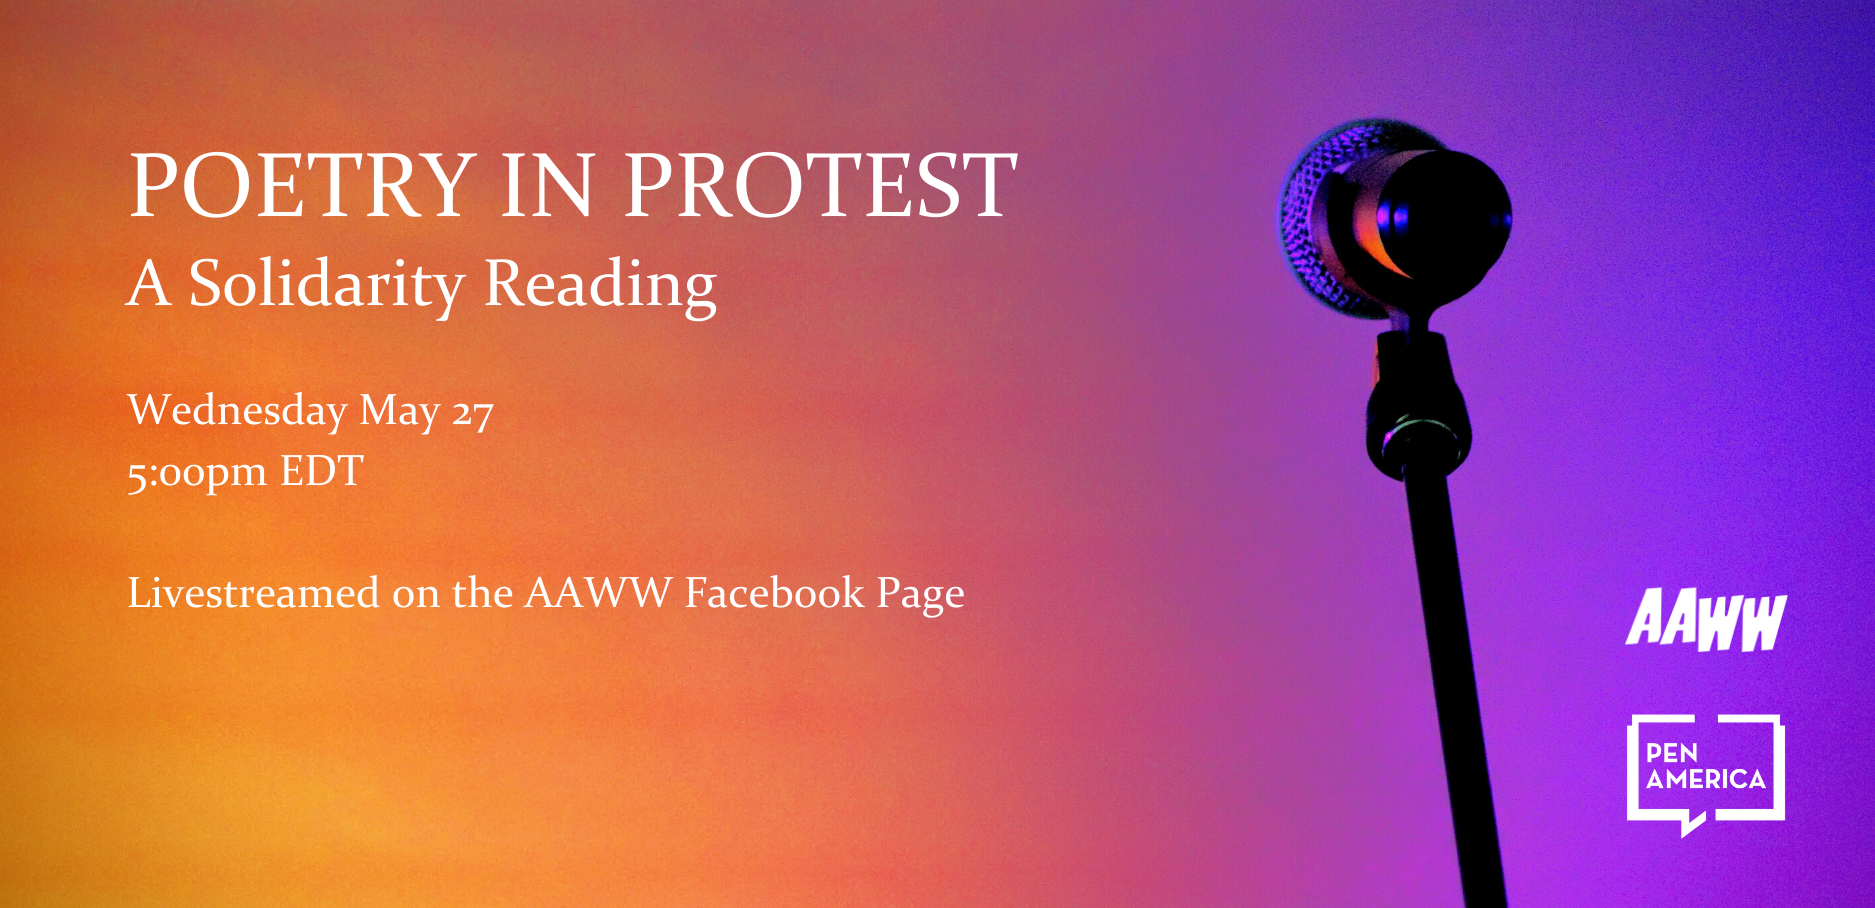 Poetry in Protest: A Solidarity Reading